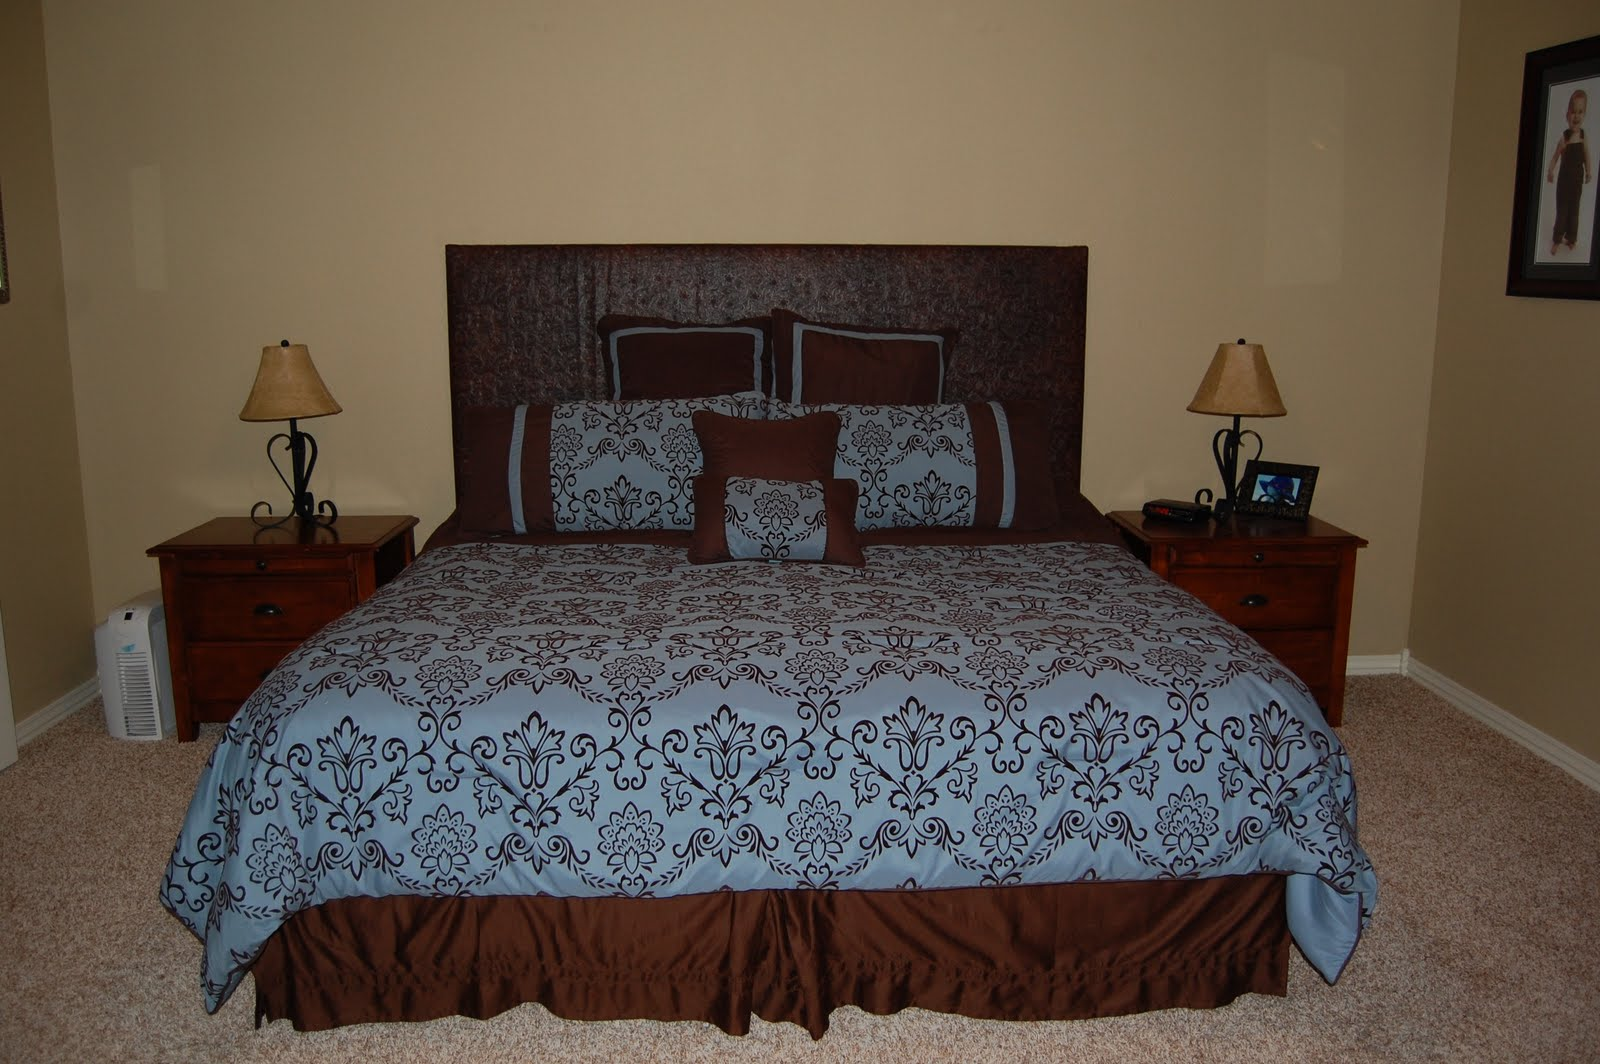 1600x1064px 6 Wonderful Homemade Headboards For King Size Beds Picture in Bedroom